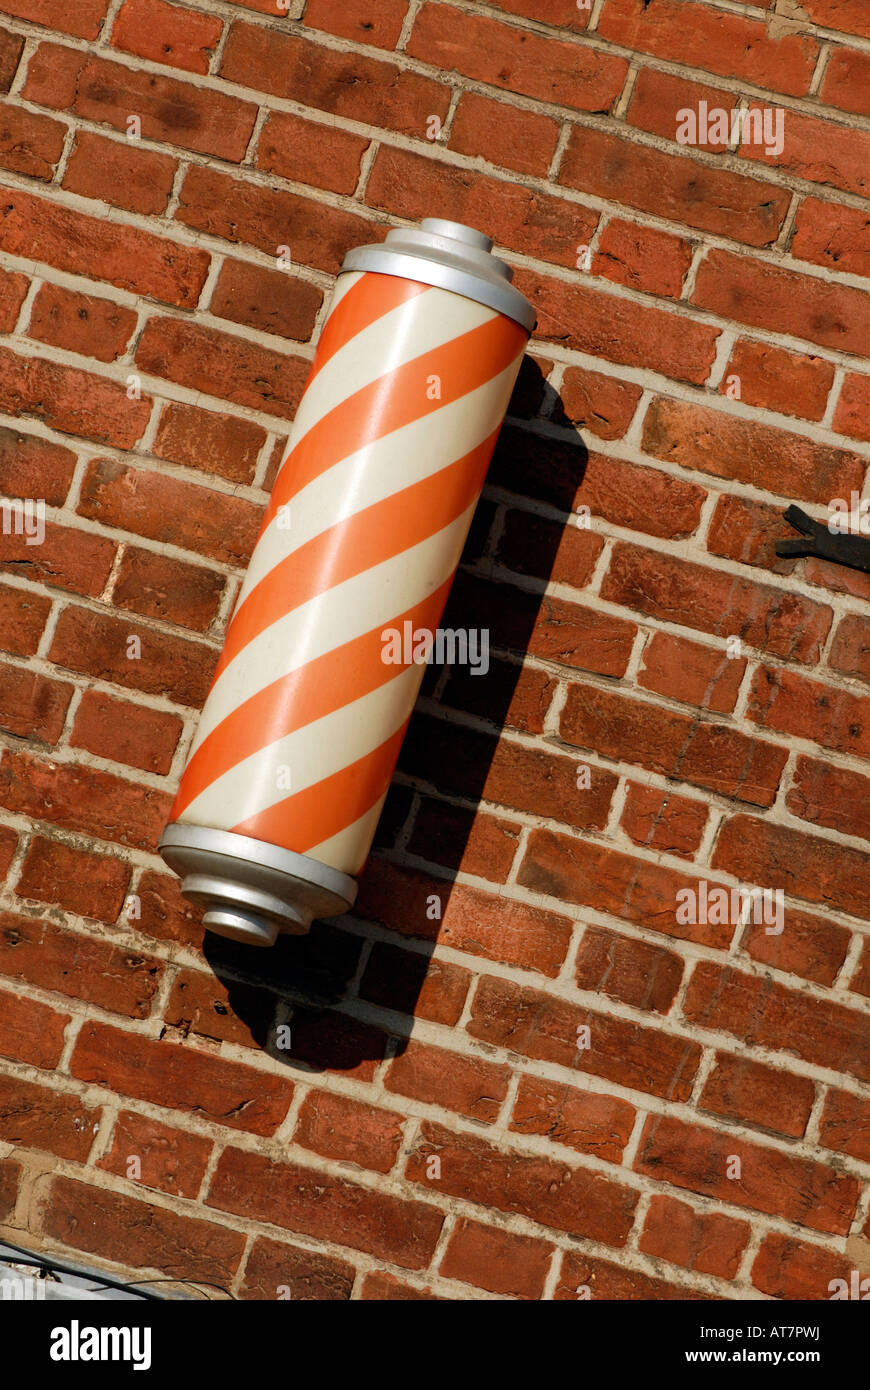 a barbers pole in red and white spirals striped outside of a traditional barbers shop in a village - Stock Image